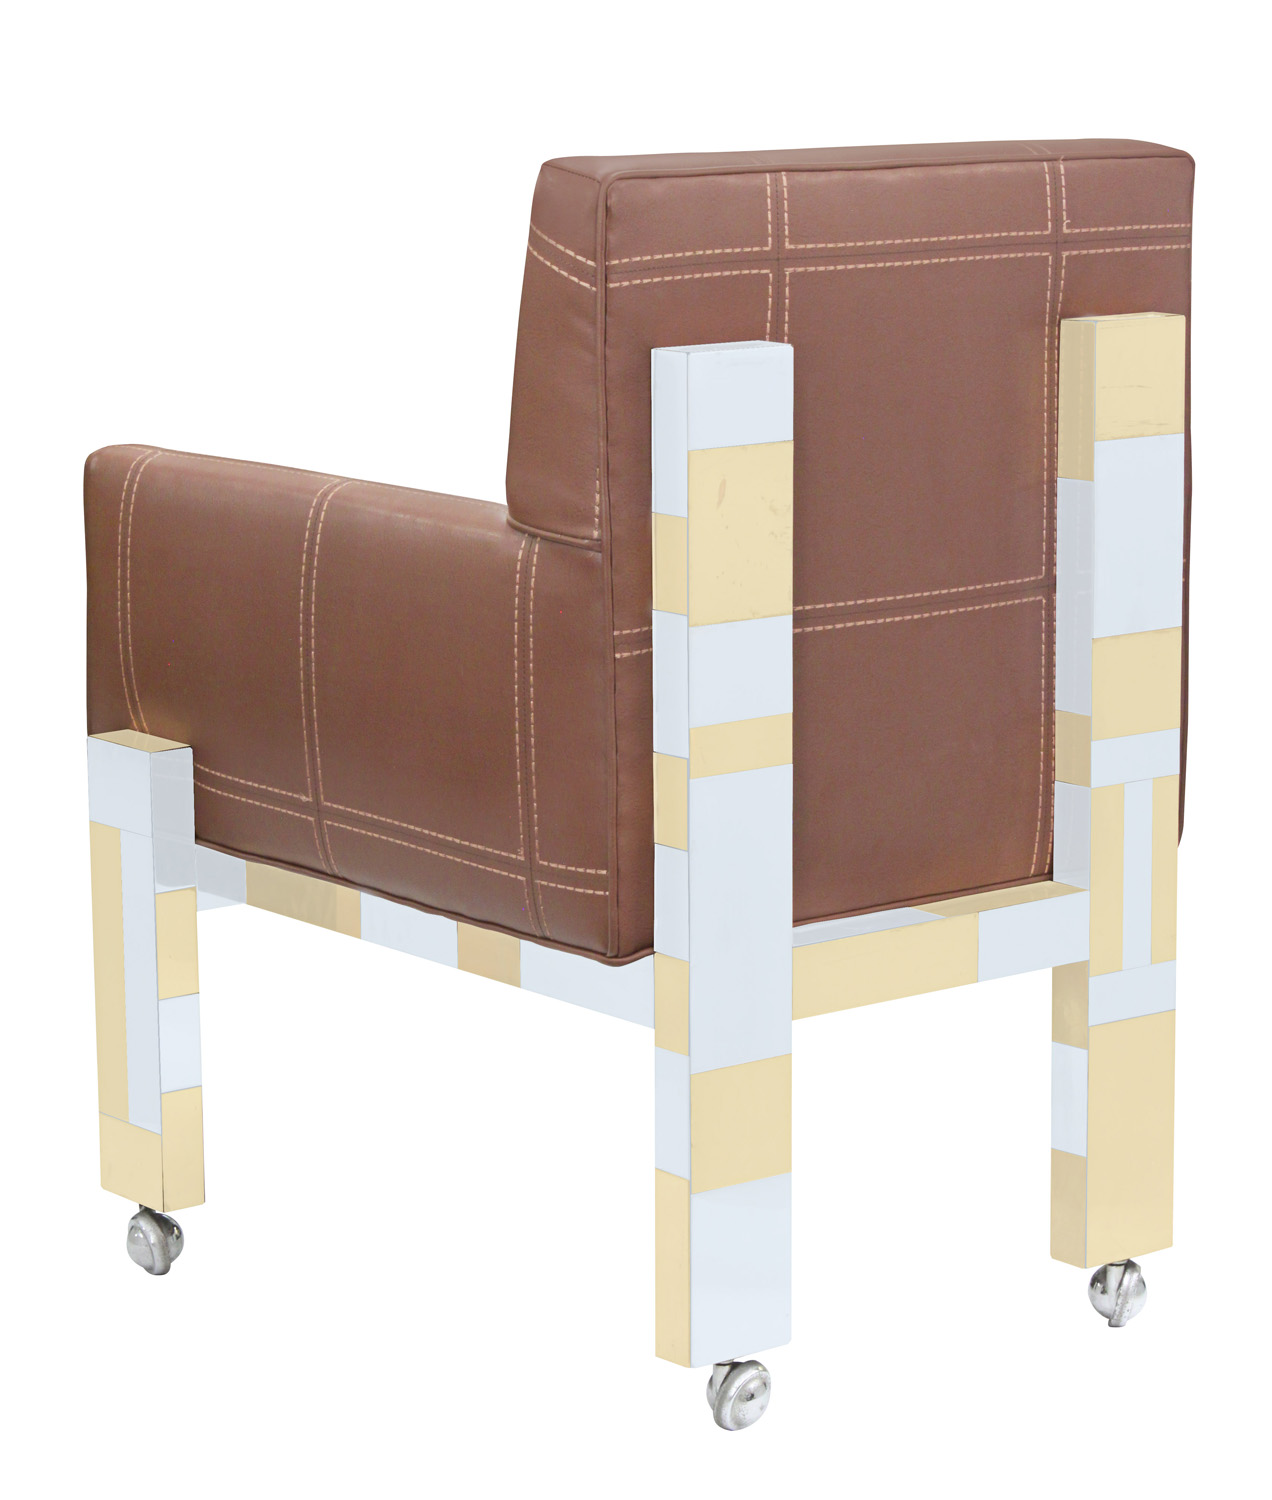 Evans 120 brass+chrome Cityscape armchairs24 detail3 hires.jpg